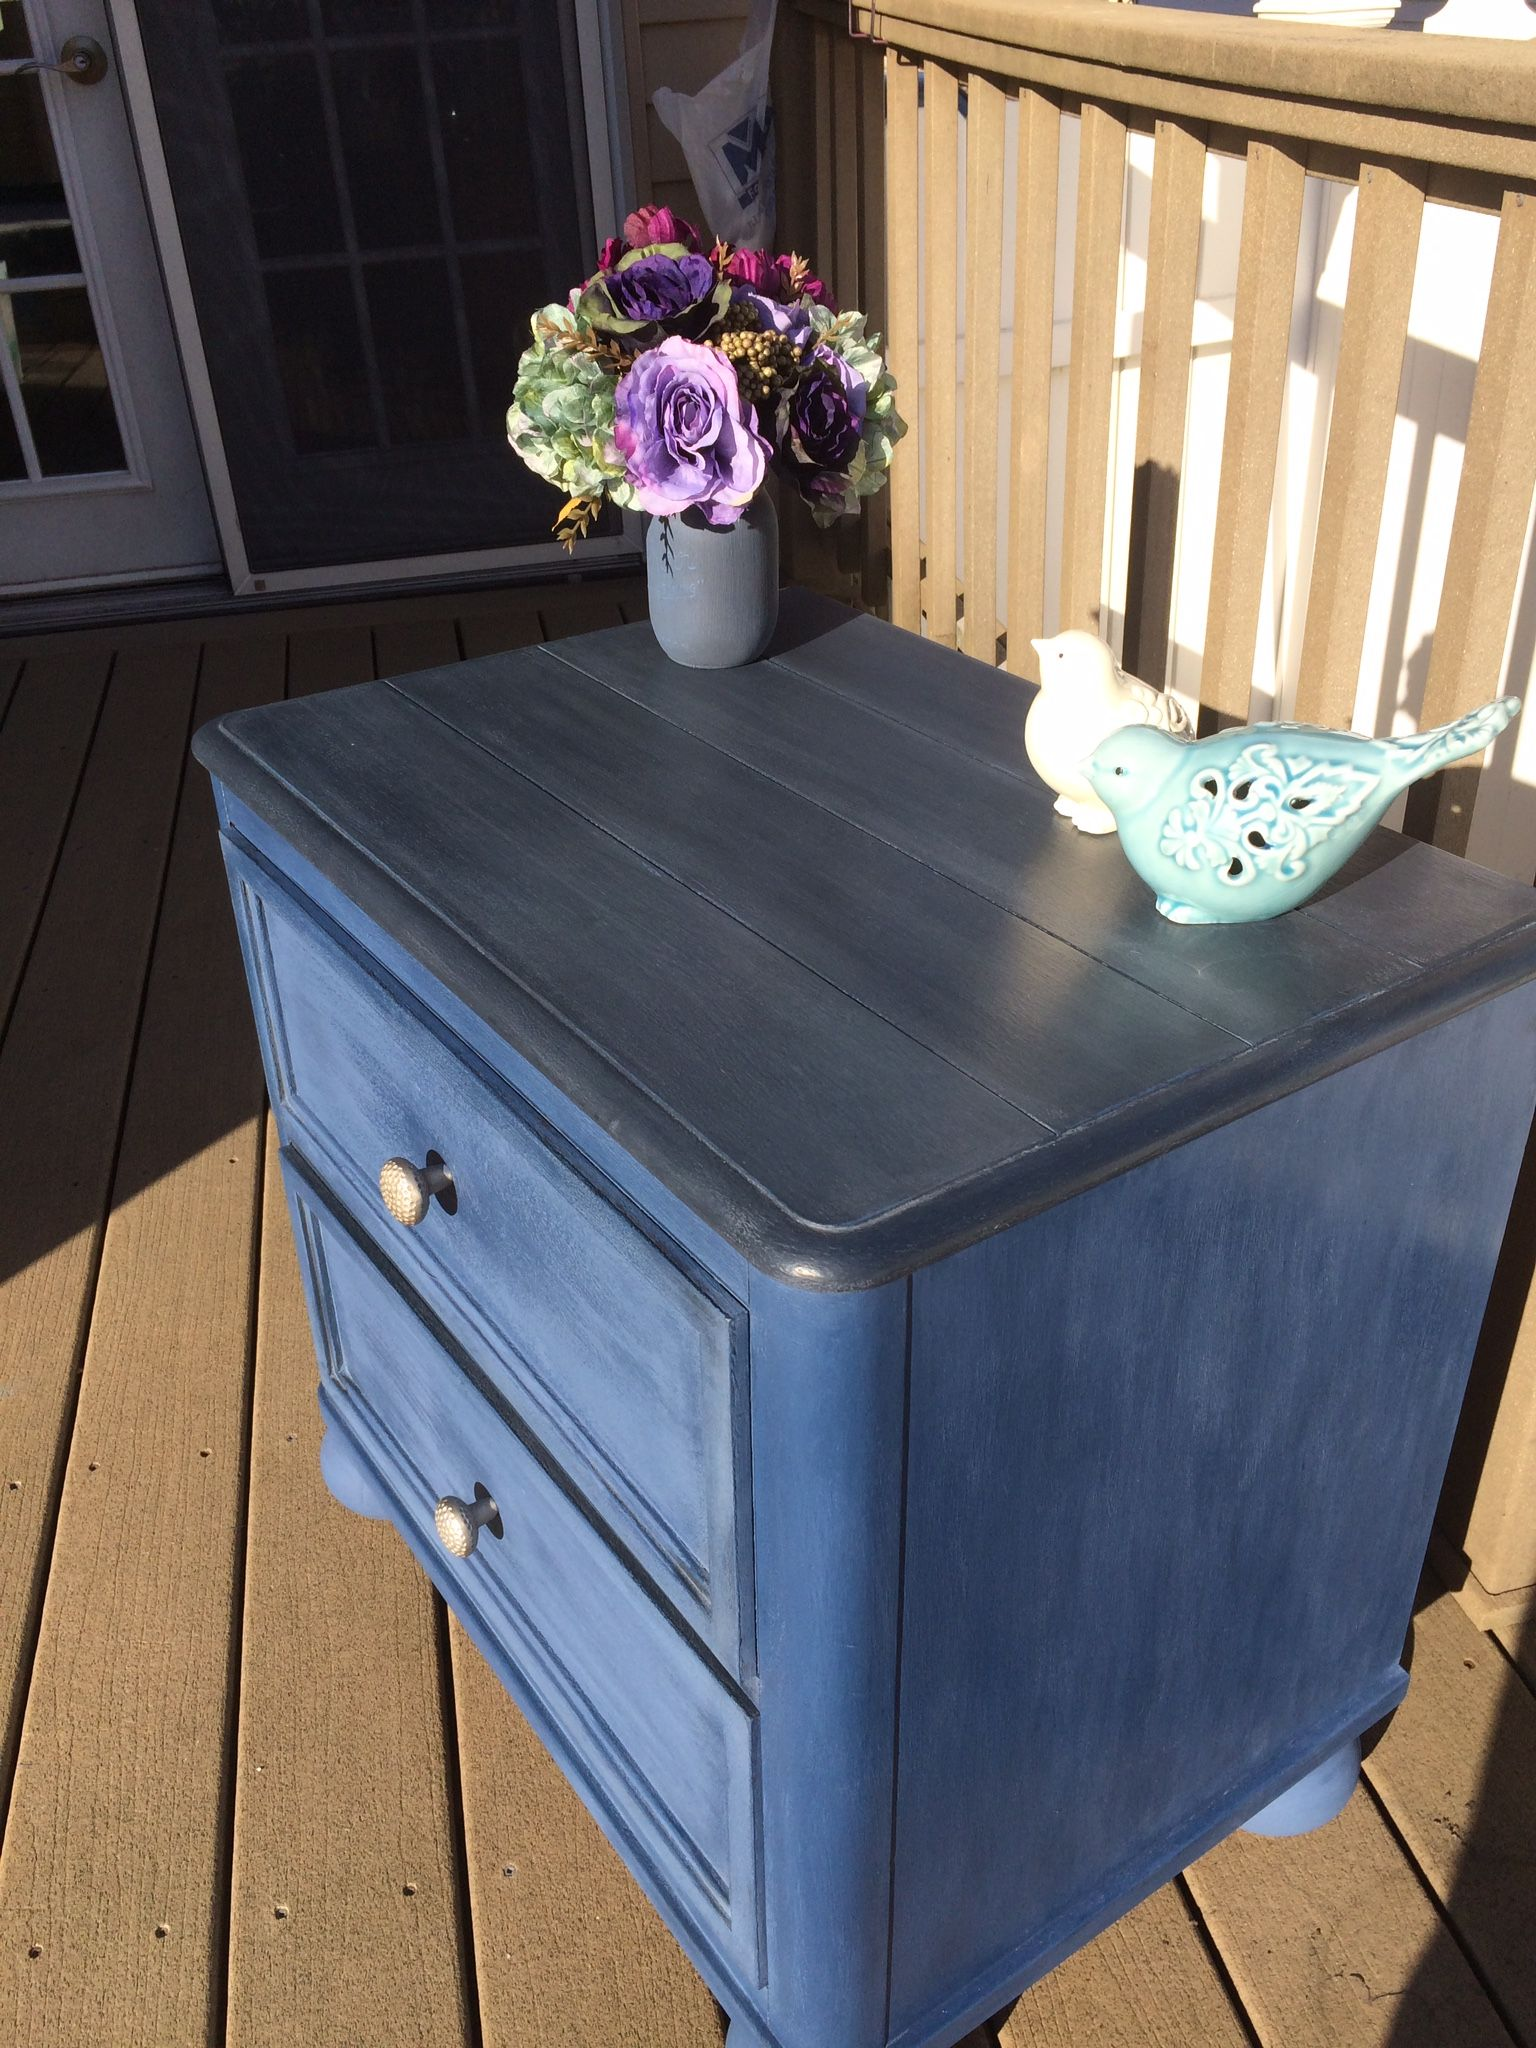 Painted This Thrift Shop Table In Rustoleum Coastal Blue Chalk Paint Waxed Then Sanded Top And